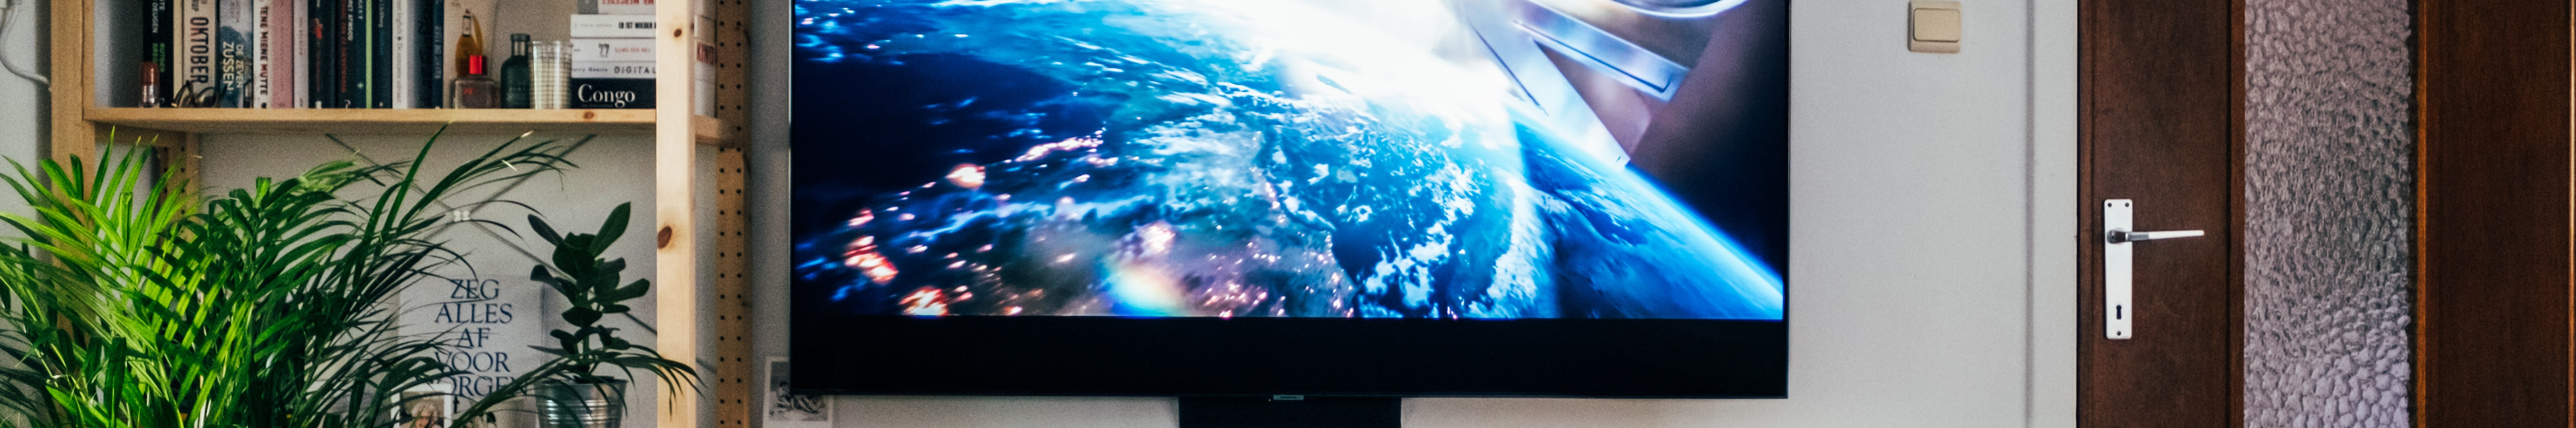 With 7 billion monthly views, Discovery provides educational TV content